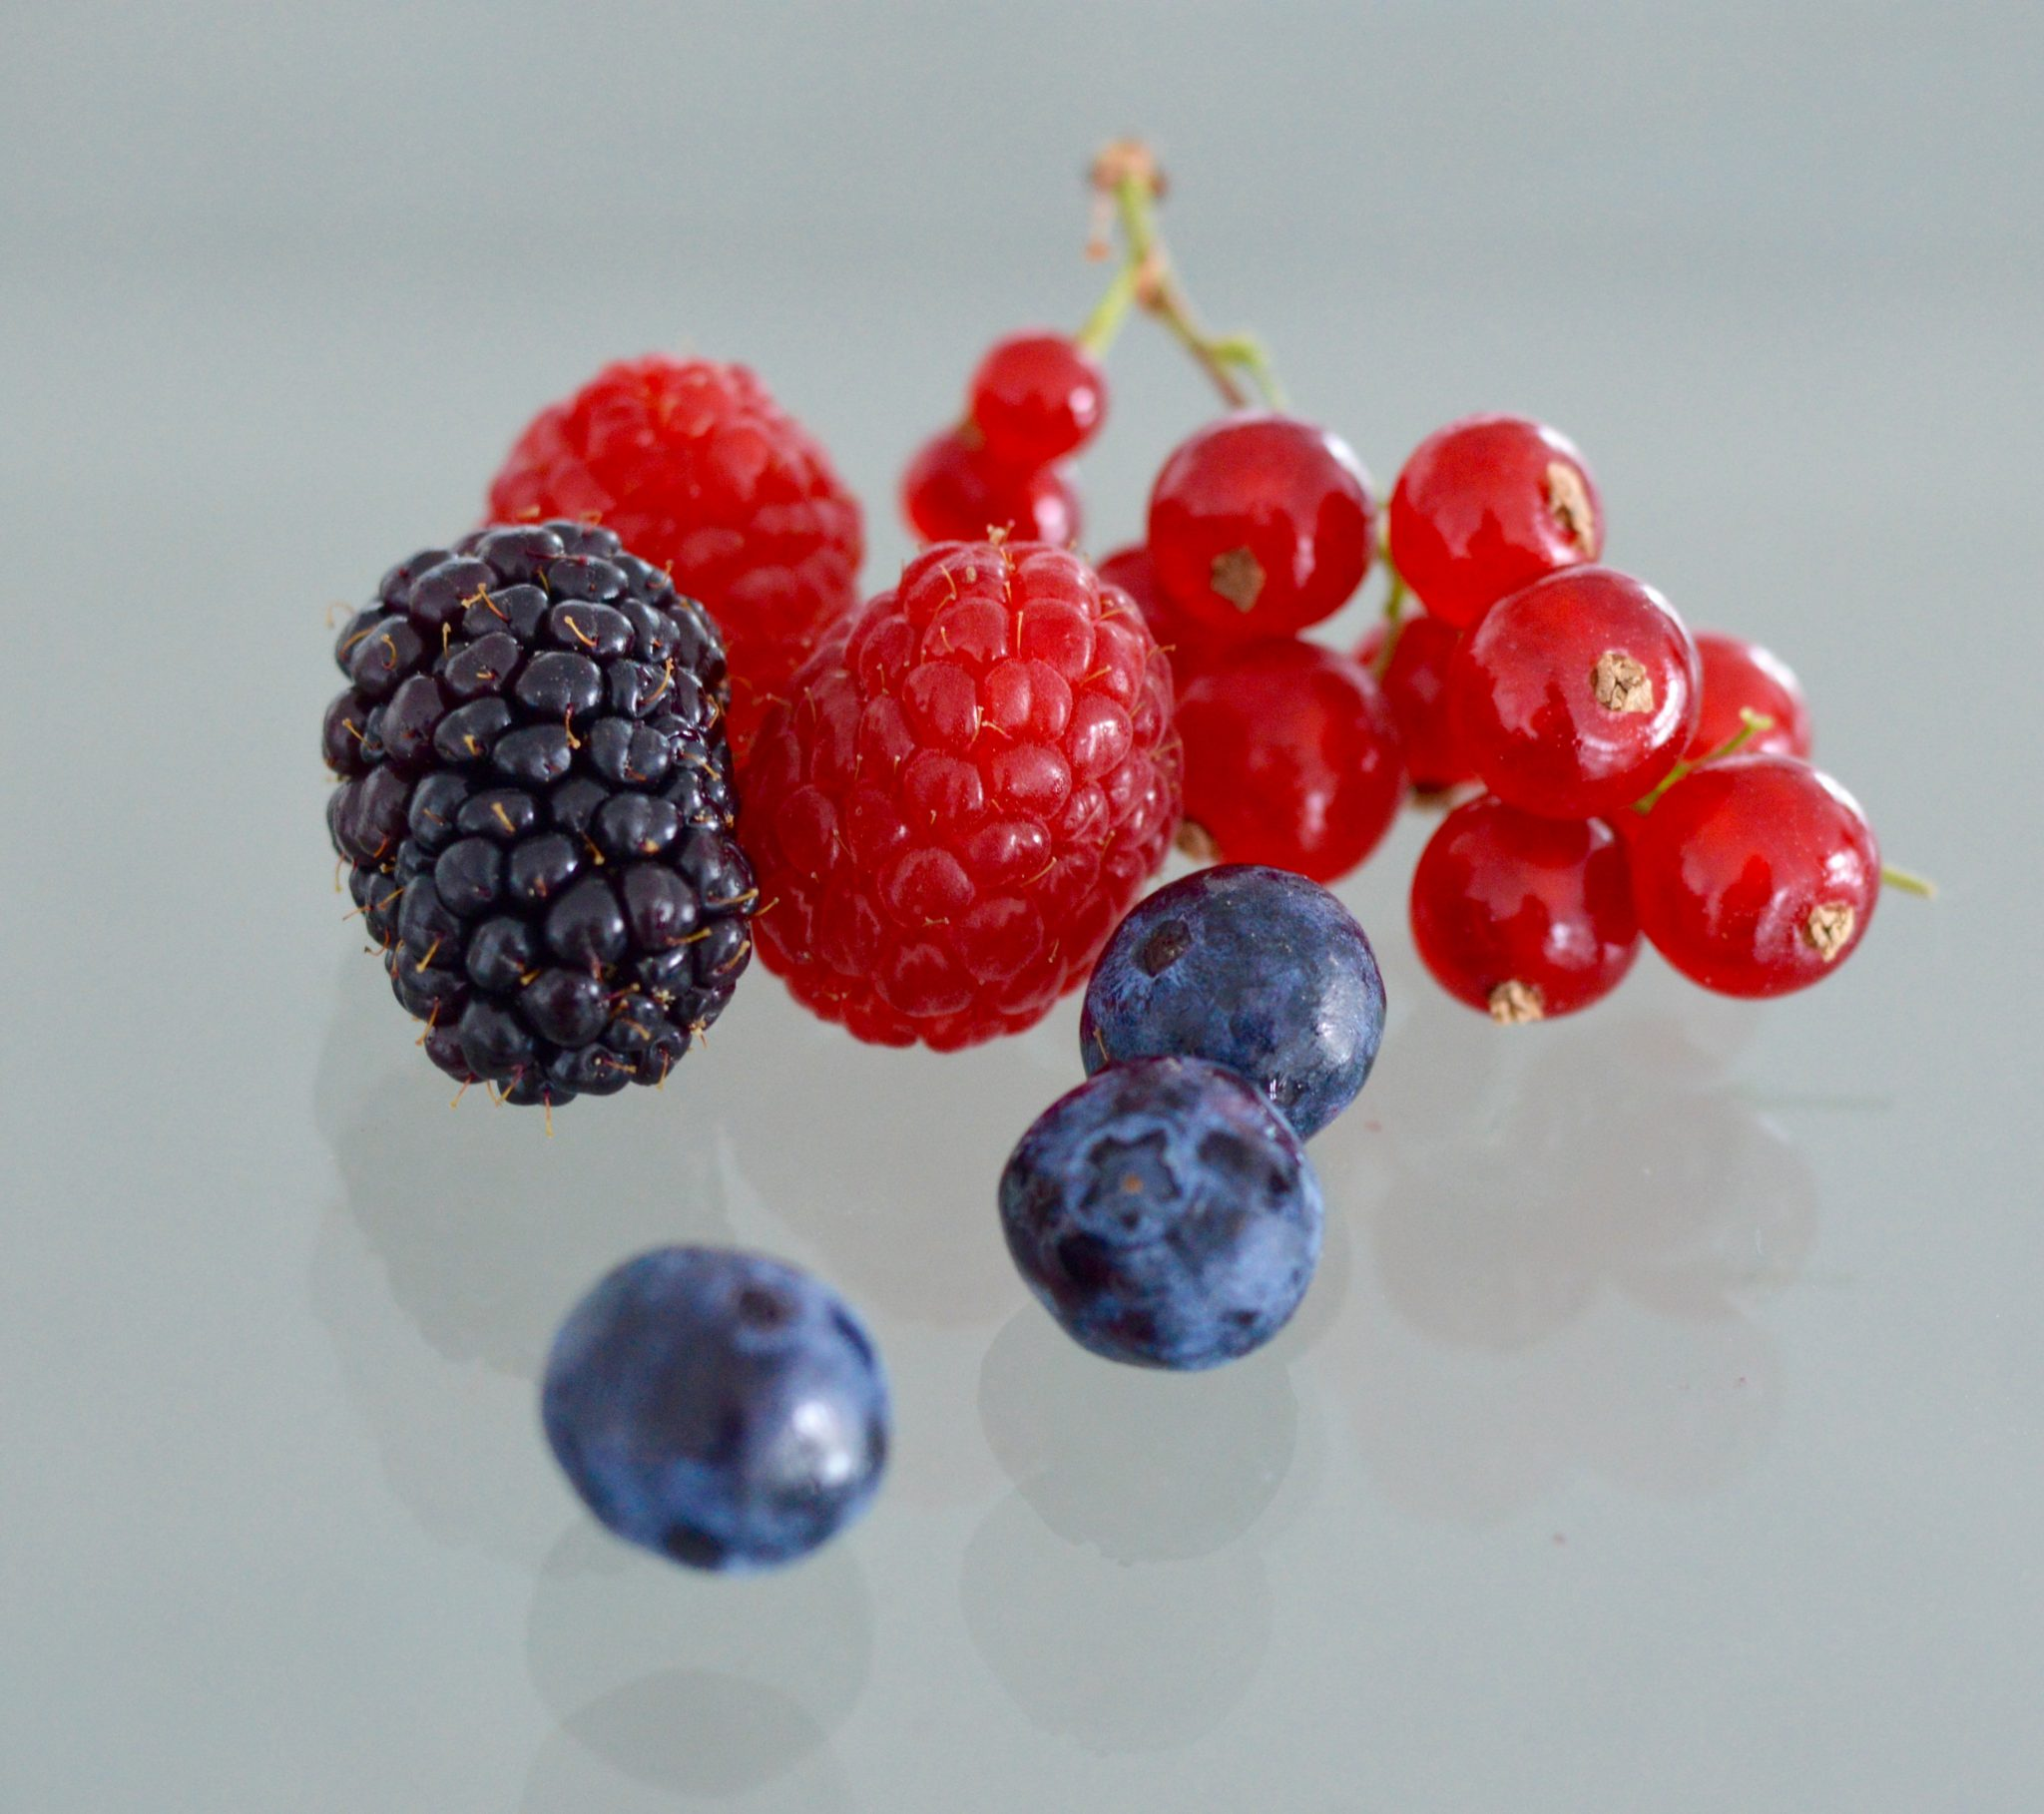 English summer berries